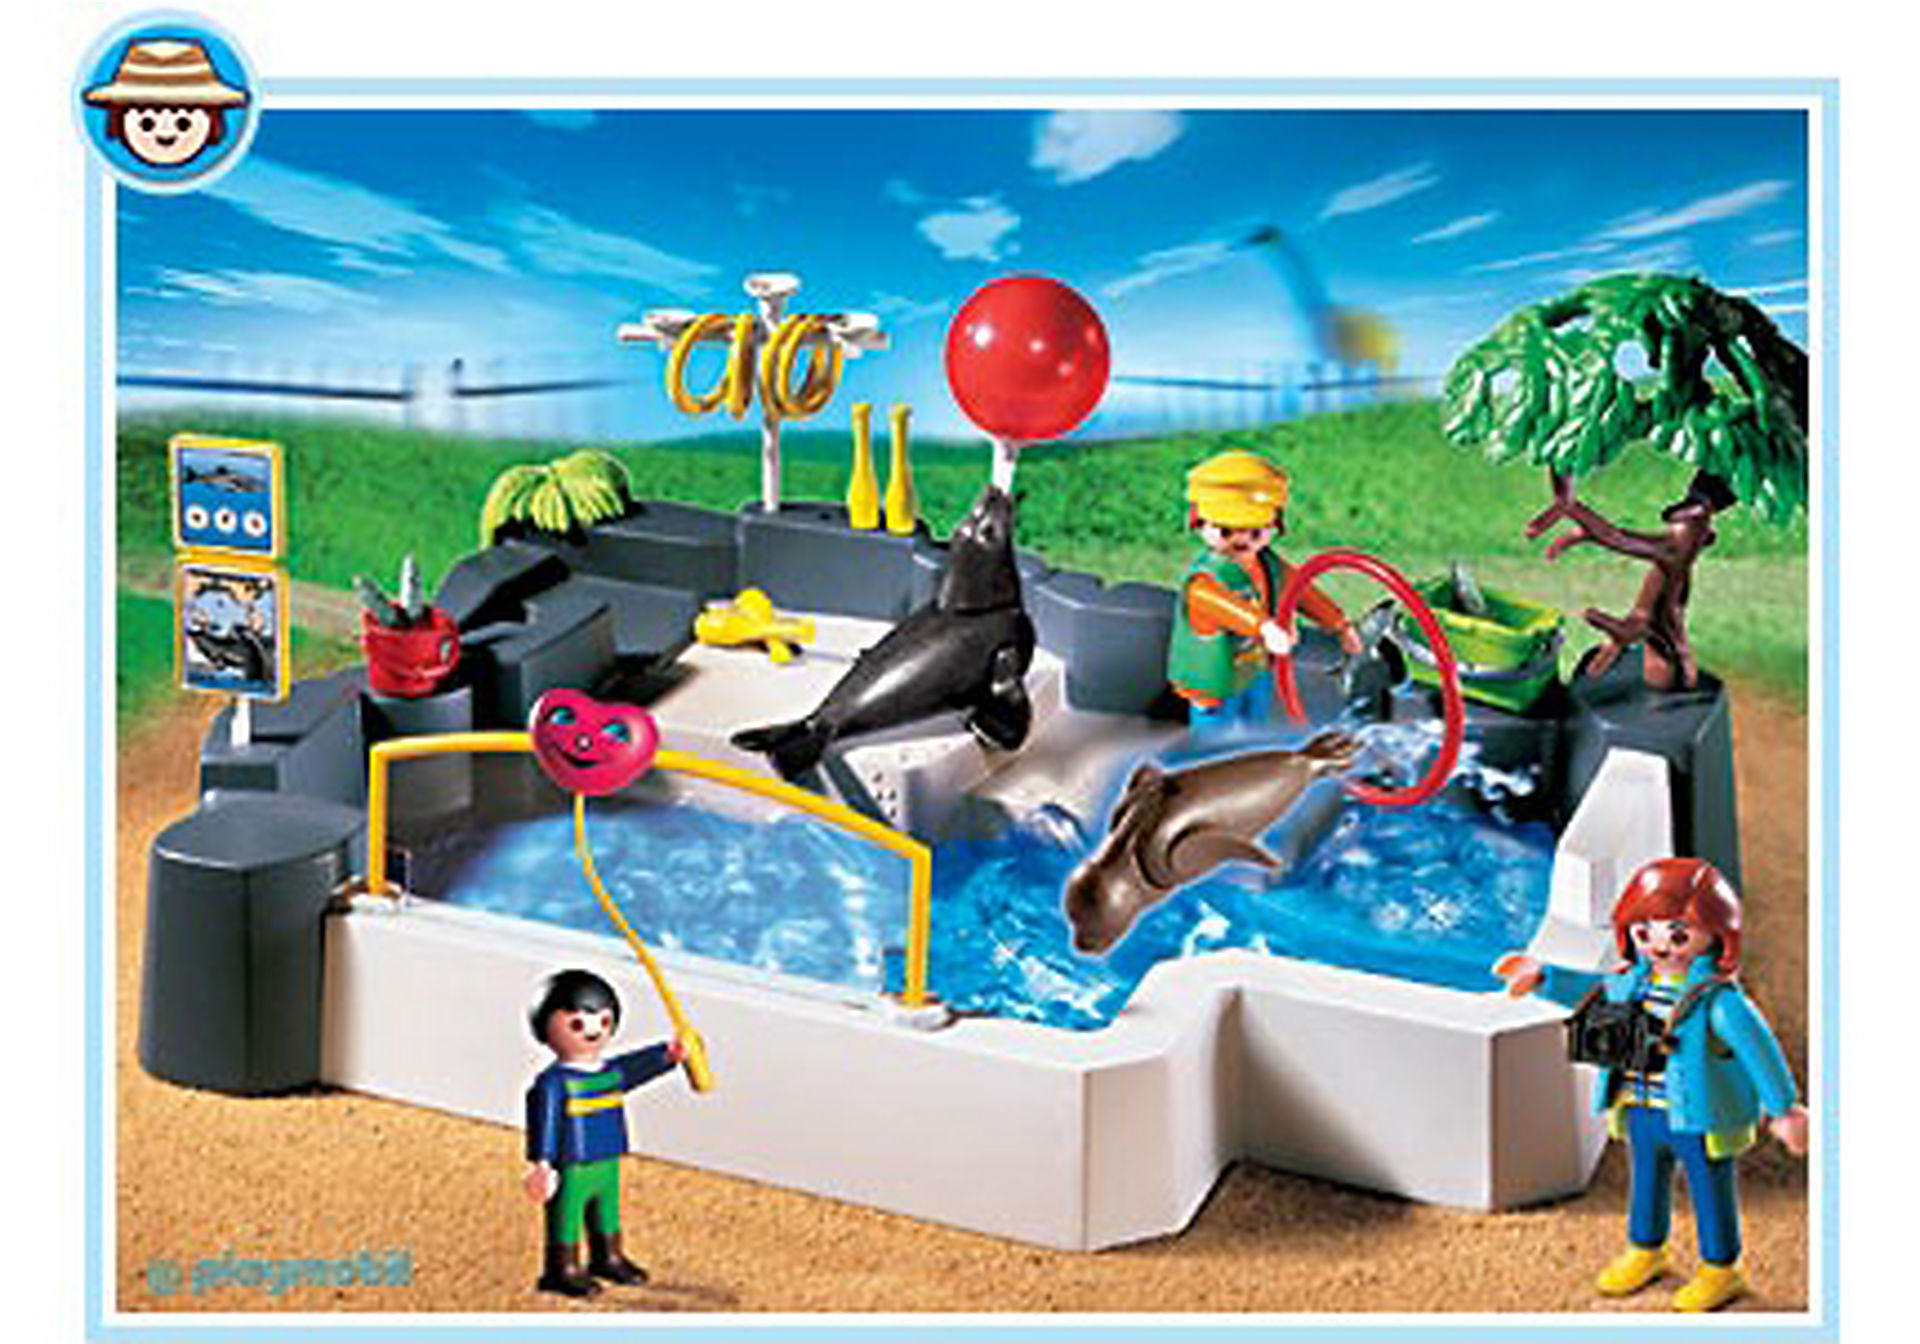 http://media.playmobil.com/i/playmobil/3135-B_product_detail/Zoo SuperSet Seehundbecken